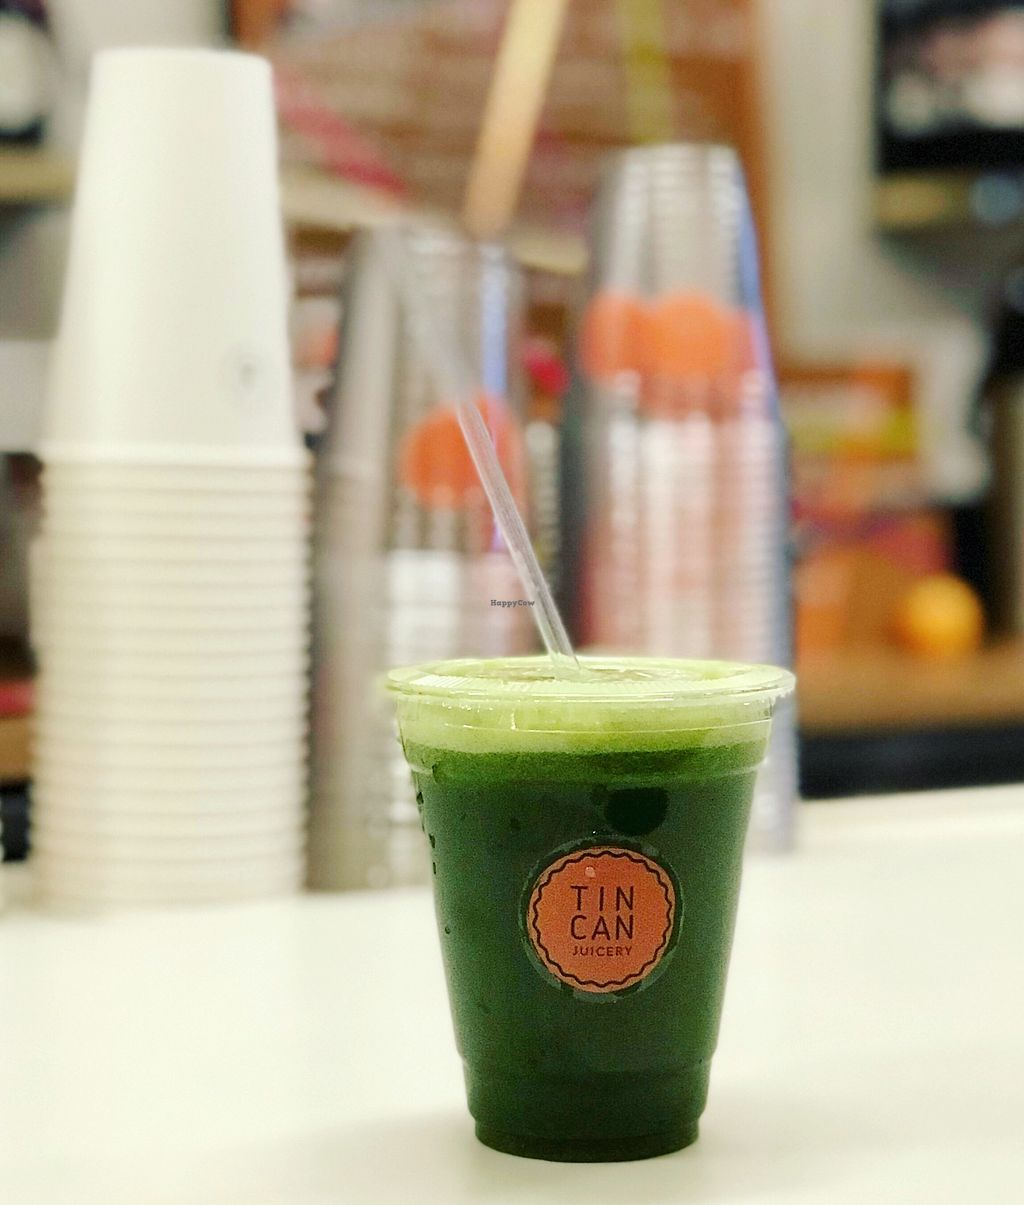 """Photo of Tin Can Juicery  by <a href=""""/members/profile/tincankelly"""">tincankelly</a> <br/>The Norm - kale, spinach, parsley, celery, cucumber, green apple <br/> December 29, 2017  - <a href='/contact/abuse/image/108144/340543'>Report</a>"""